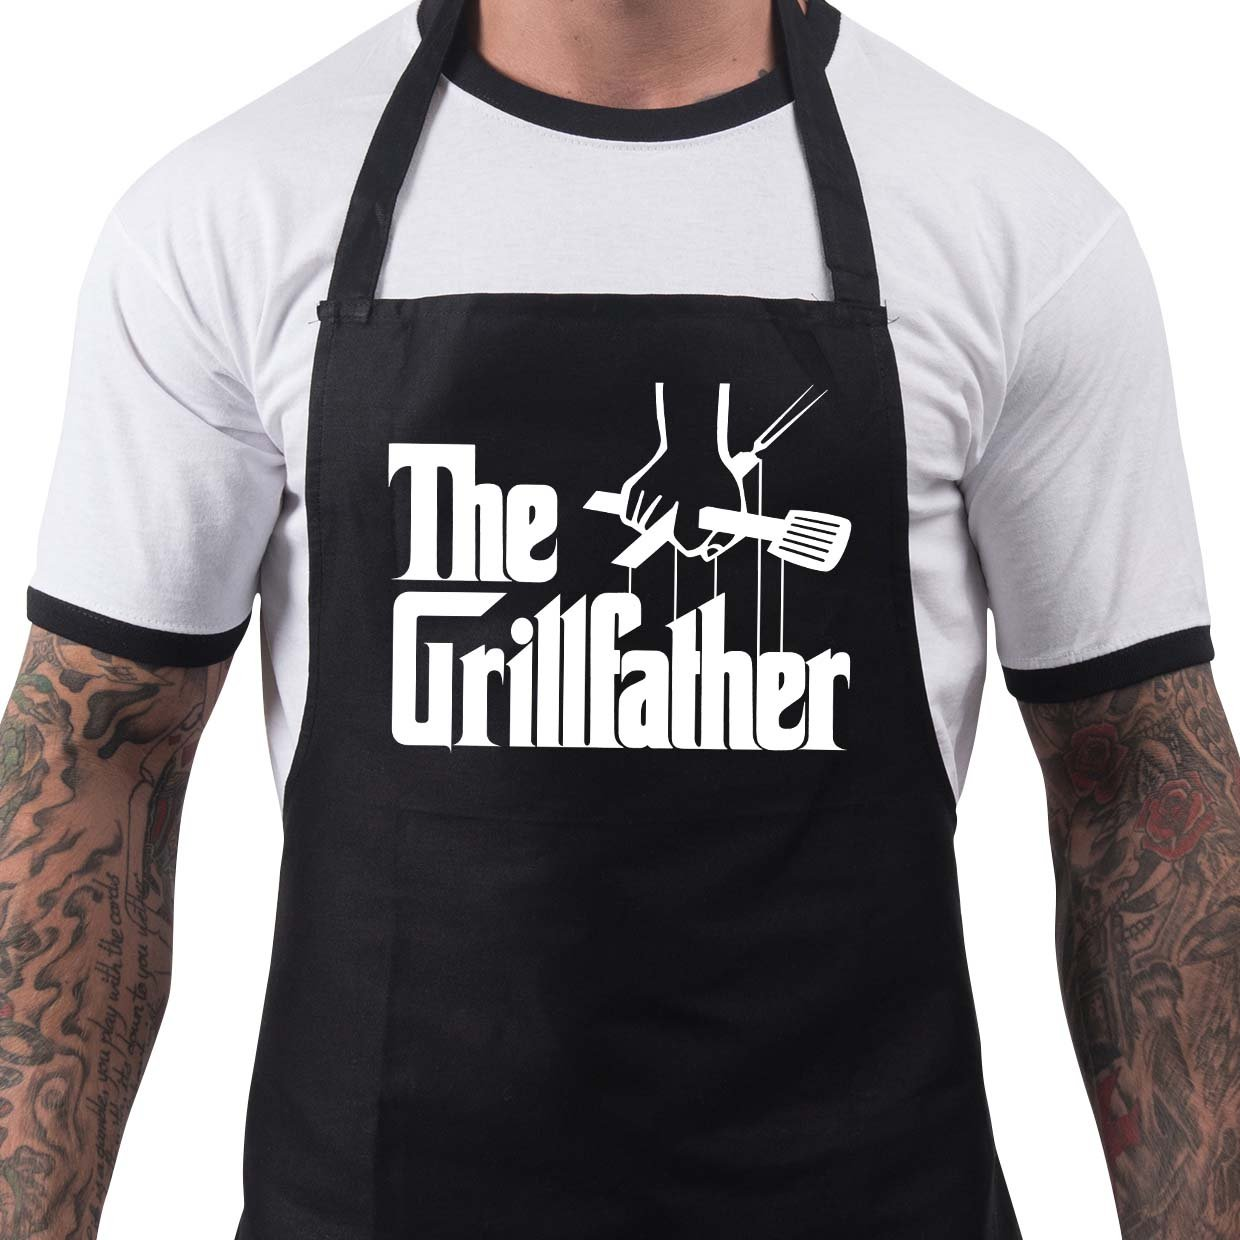 BBQ Apron Funny Grill Aprons for Men The Grillfather Men's Grilling Gifts Black by Bang Tidy Clothing (Image #1)